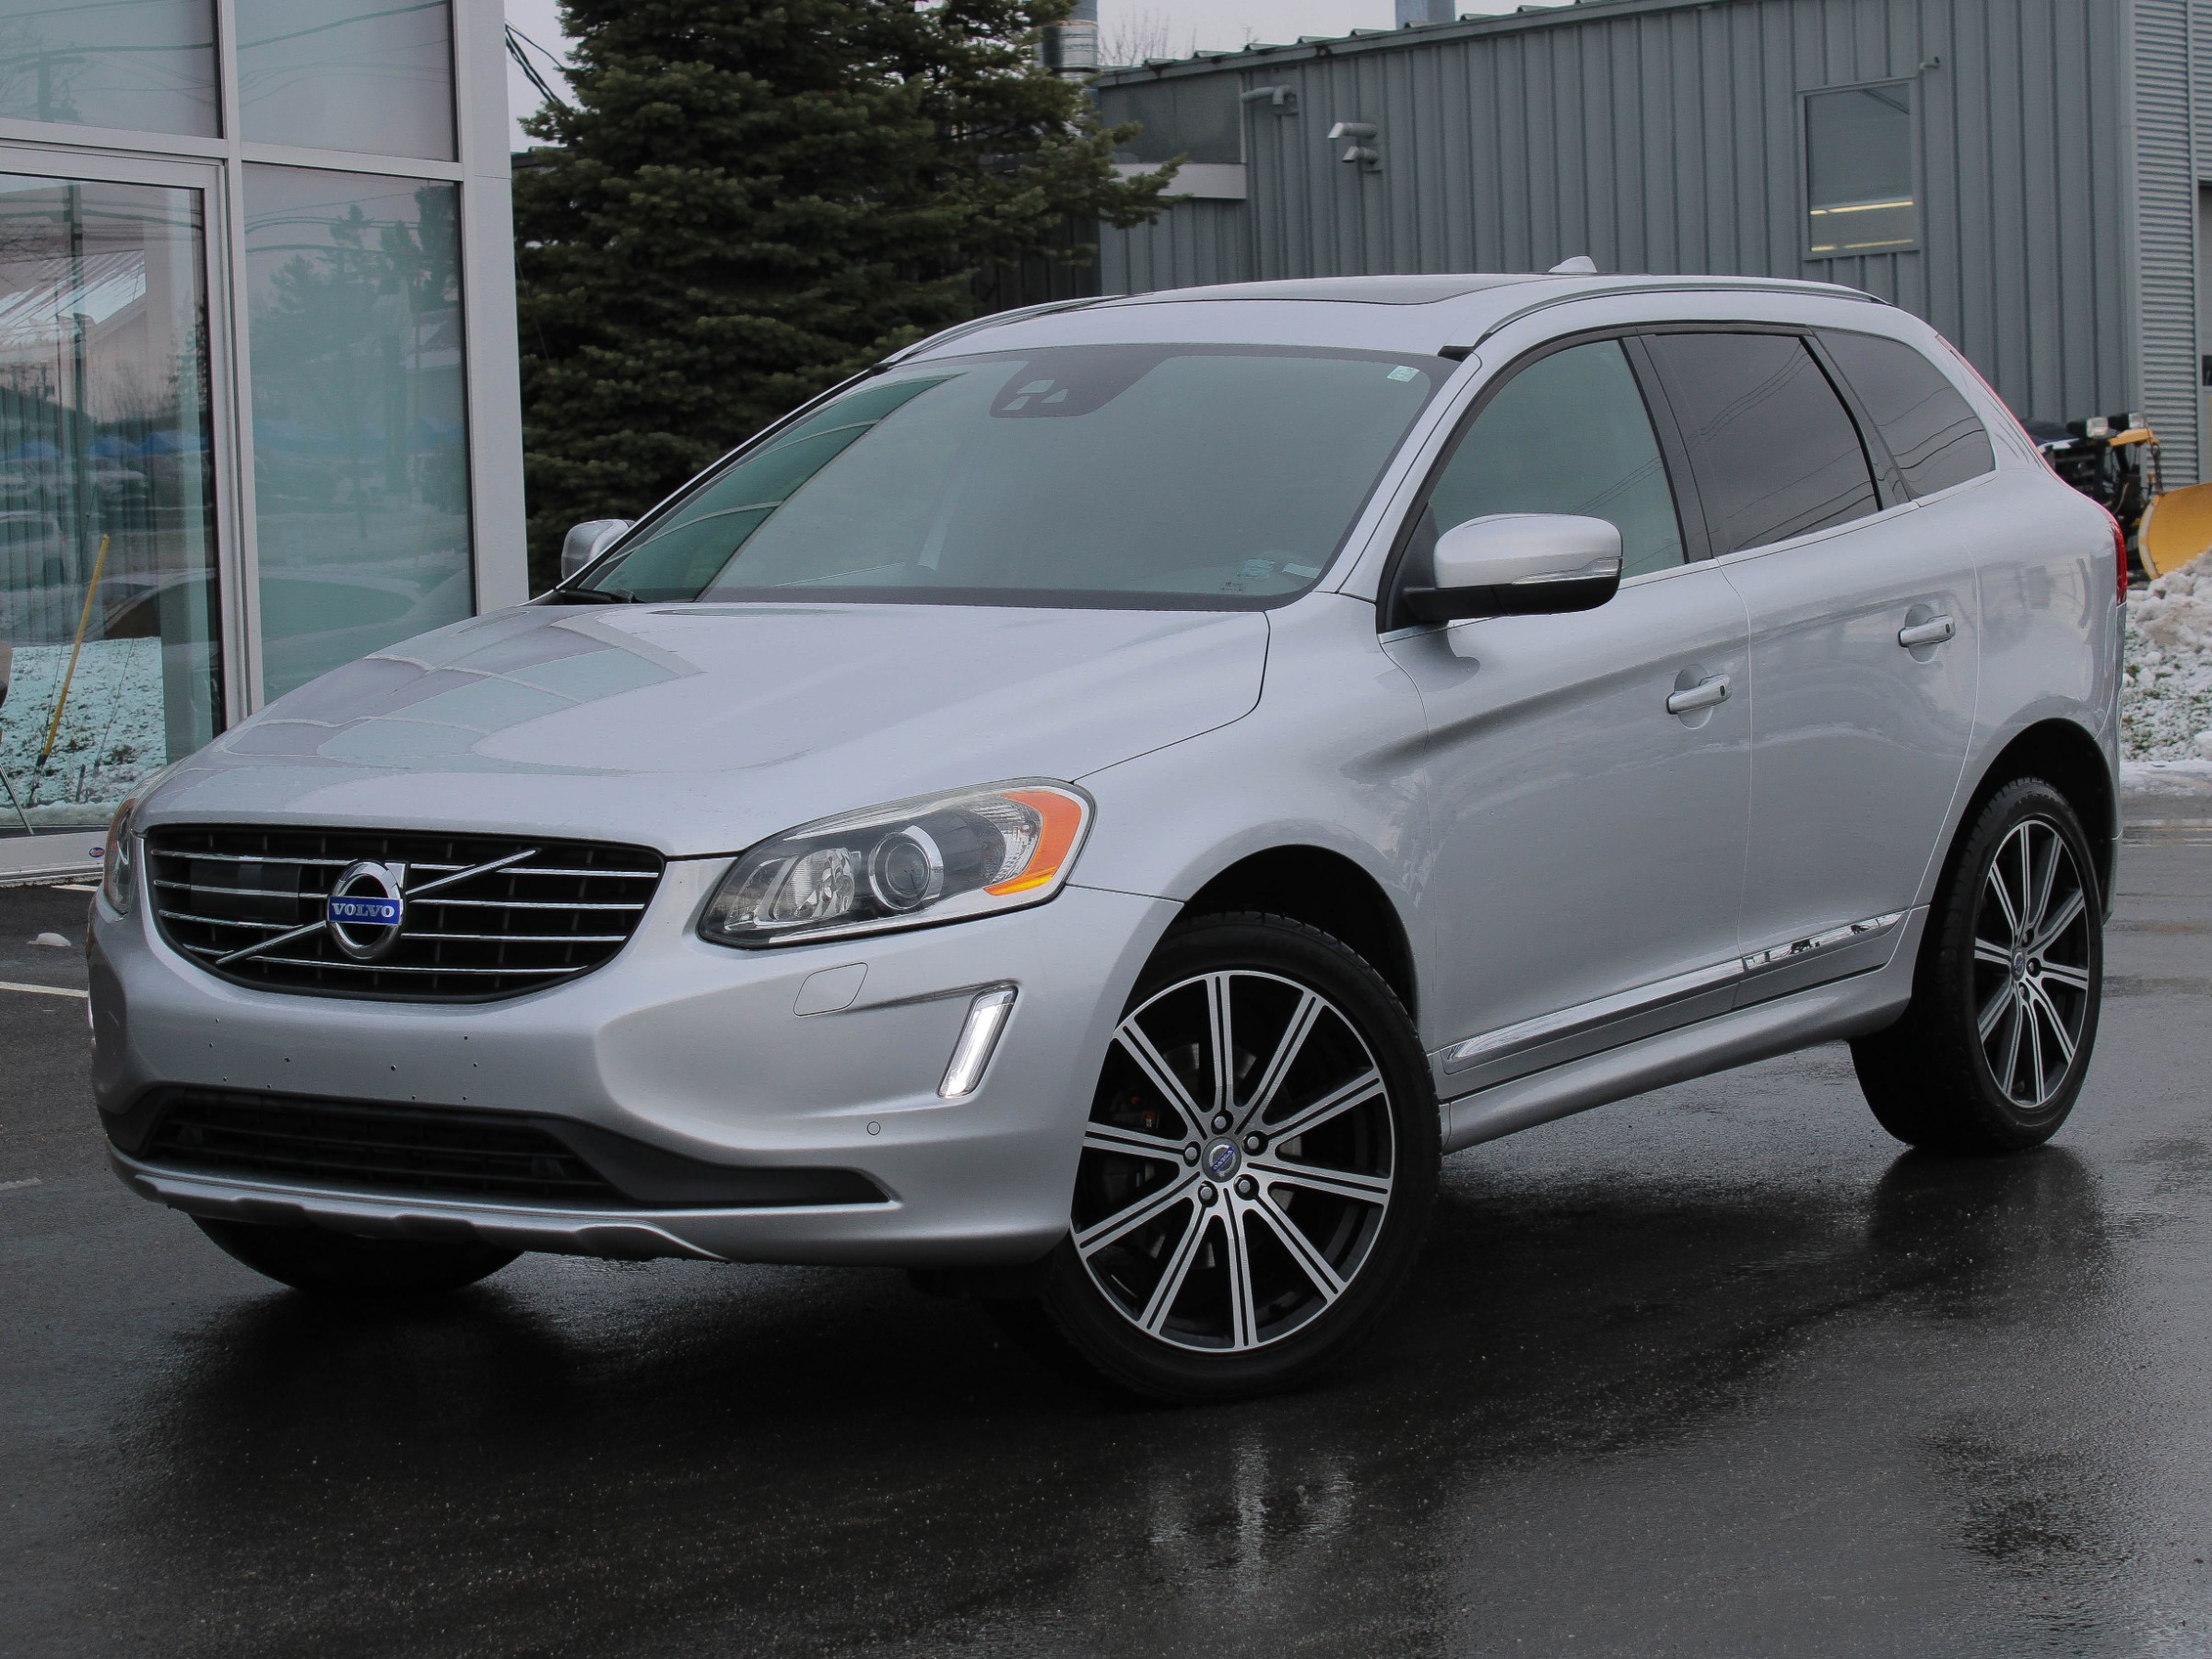 Certified Pre-Owned 2015 Volvo XC60 T6 Platinum